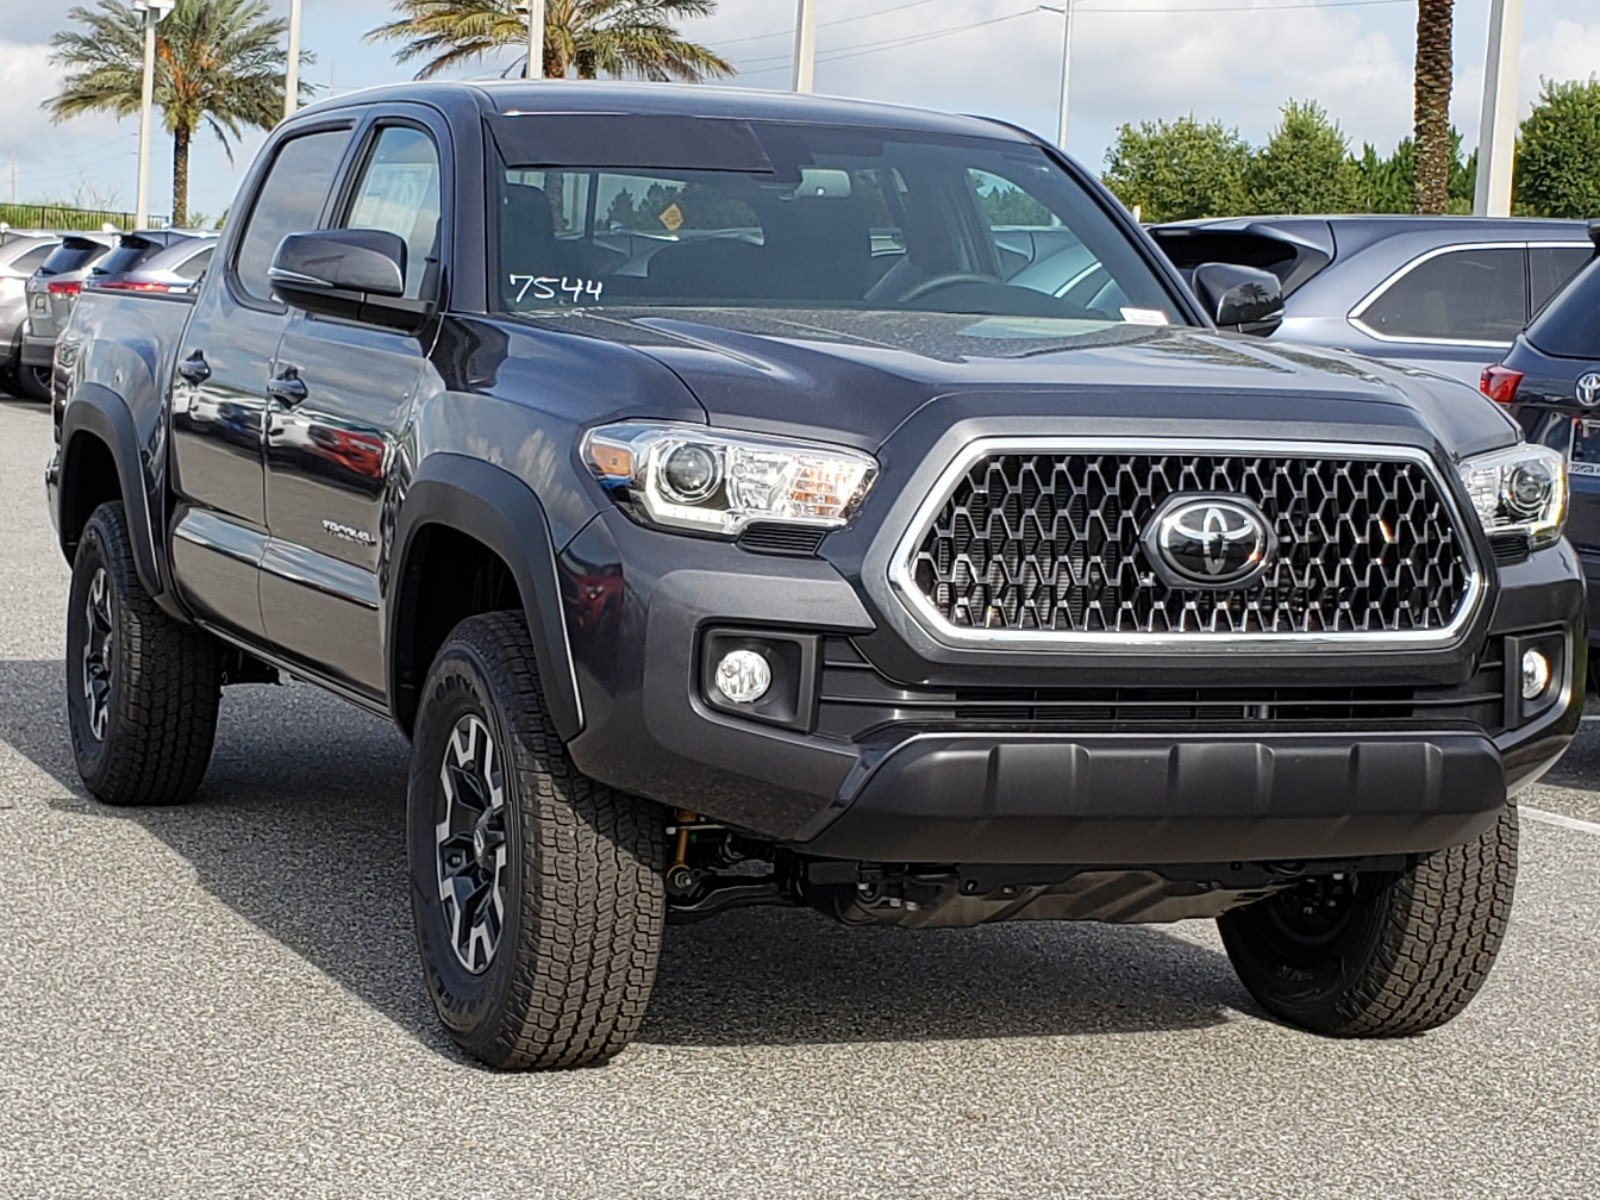 Toyota Tacoma Owners Manual: Adjusting the position of the air outlets